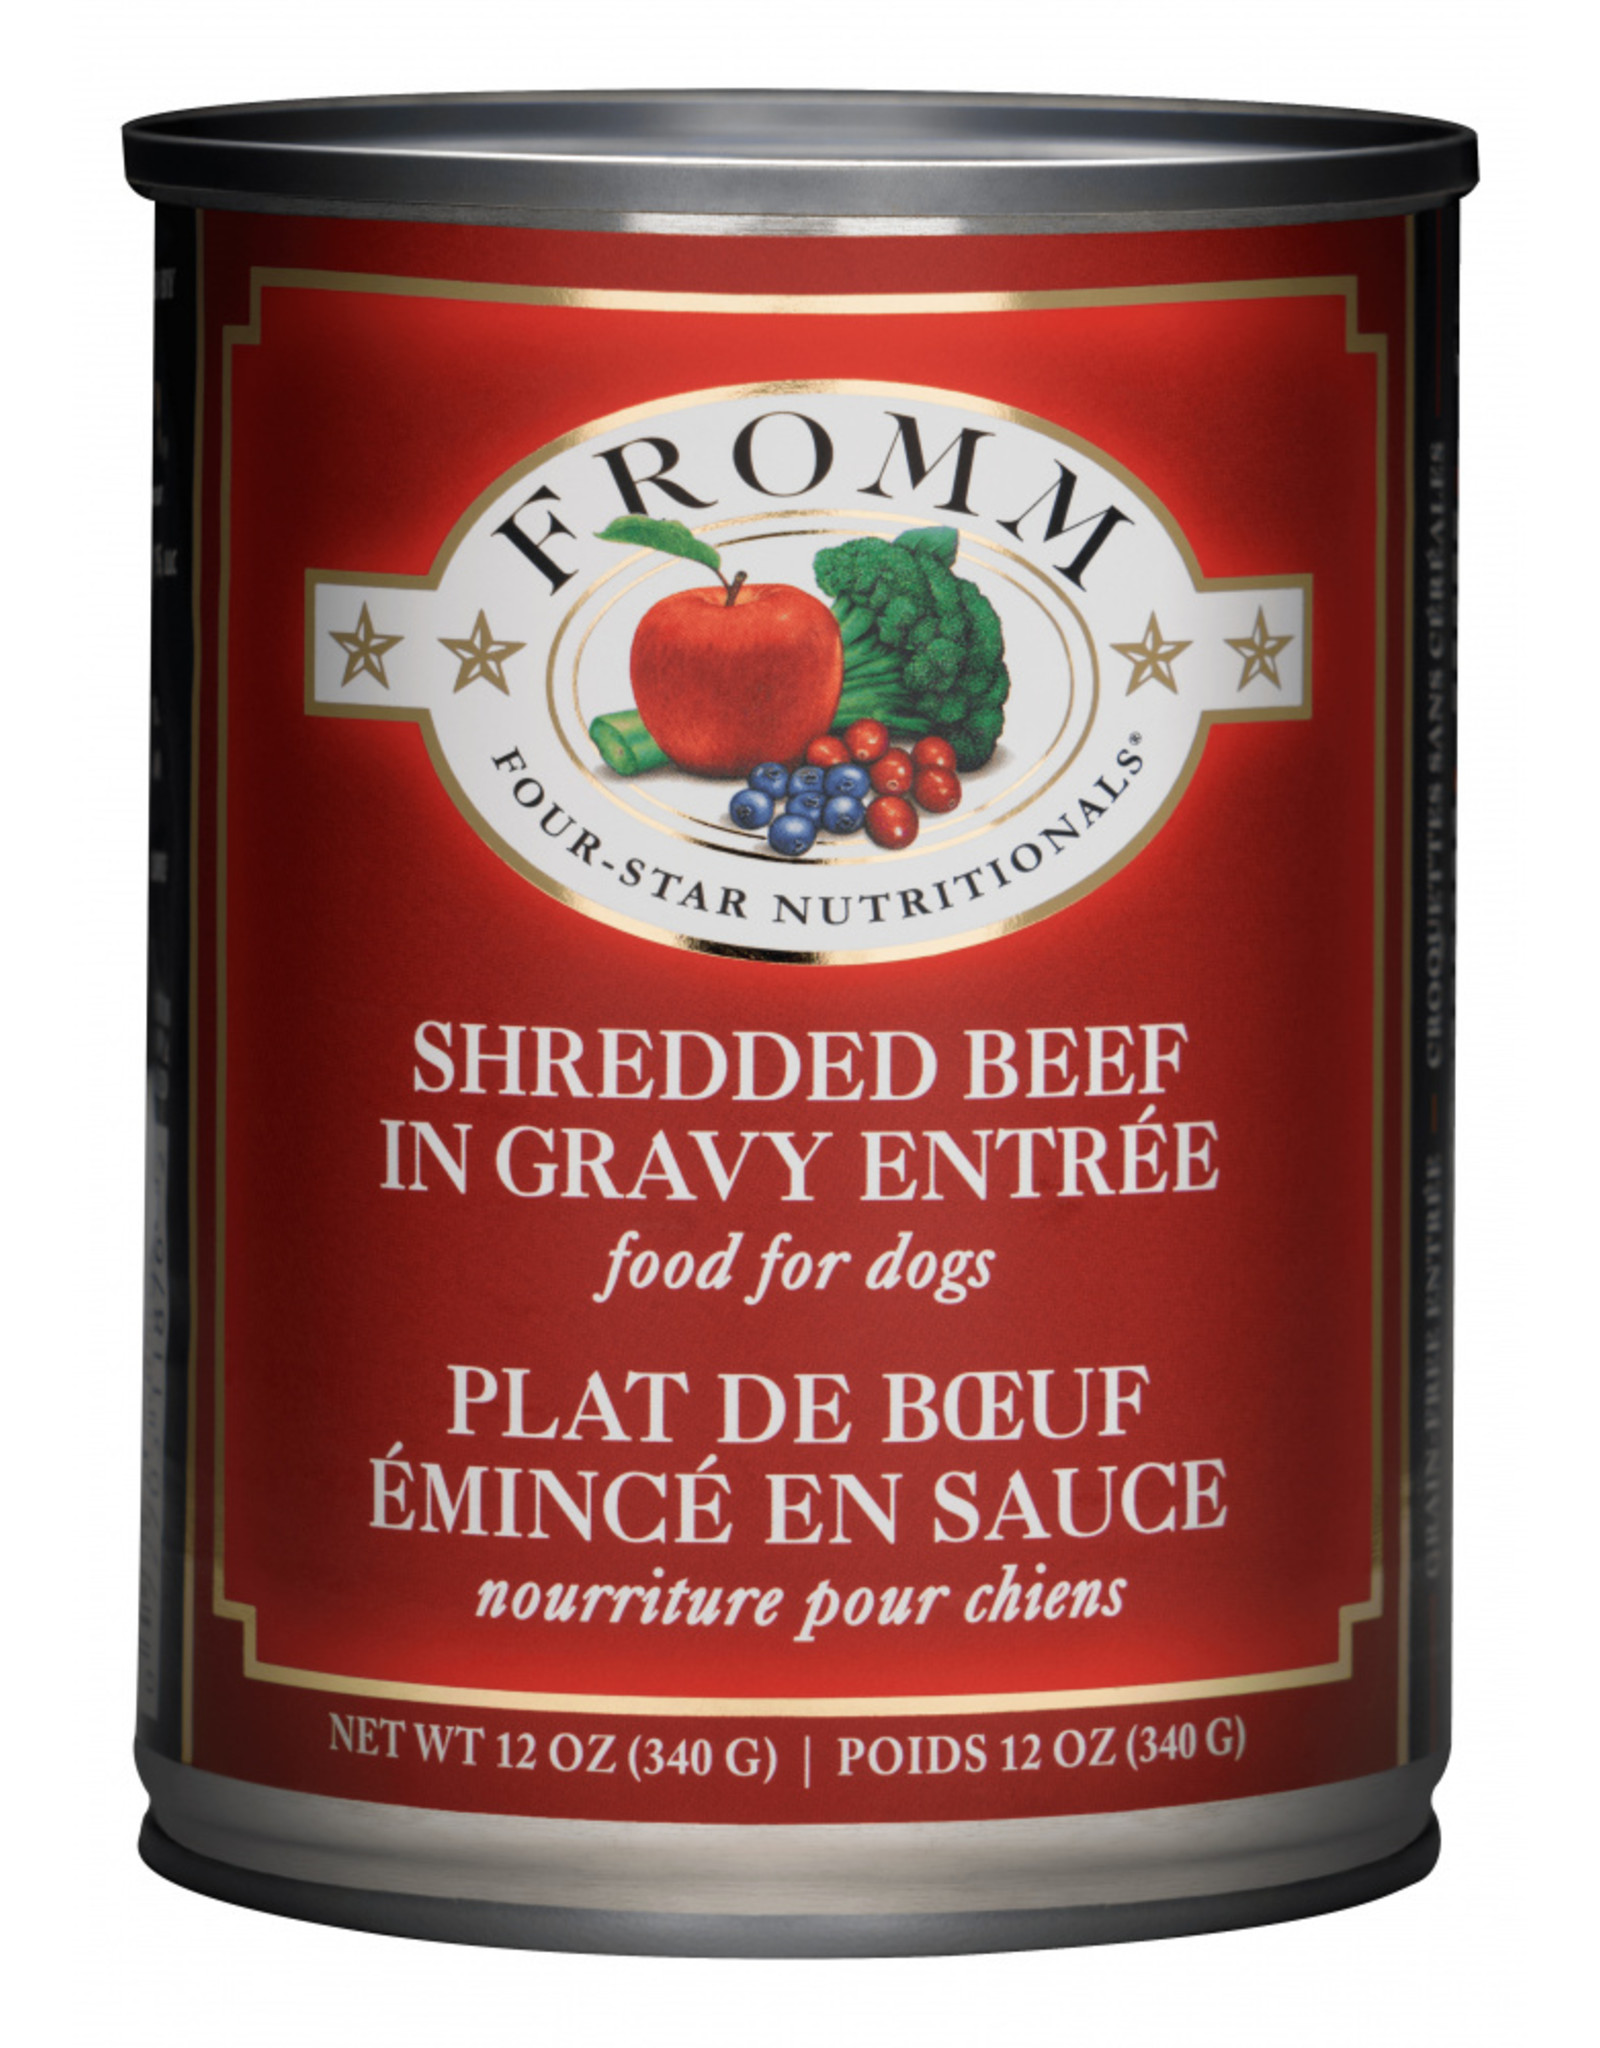 Fromm Family Pet Food FROMM DOG FOUR-STAR NUTRITIONALS SHREDDED BEEF IN GRAVY ENTRÉE 12.2OZ